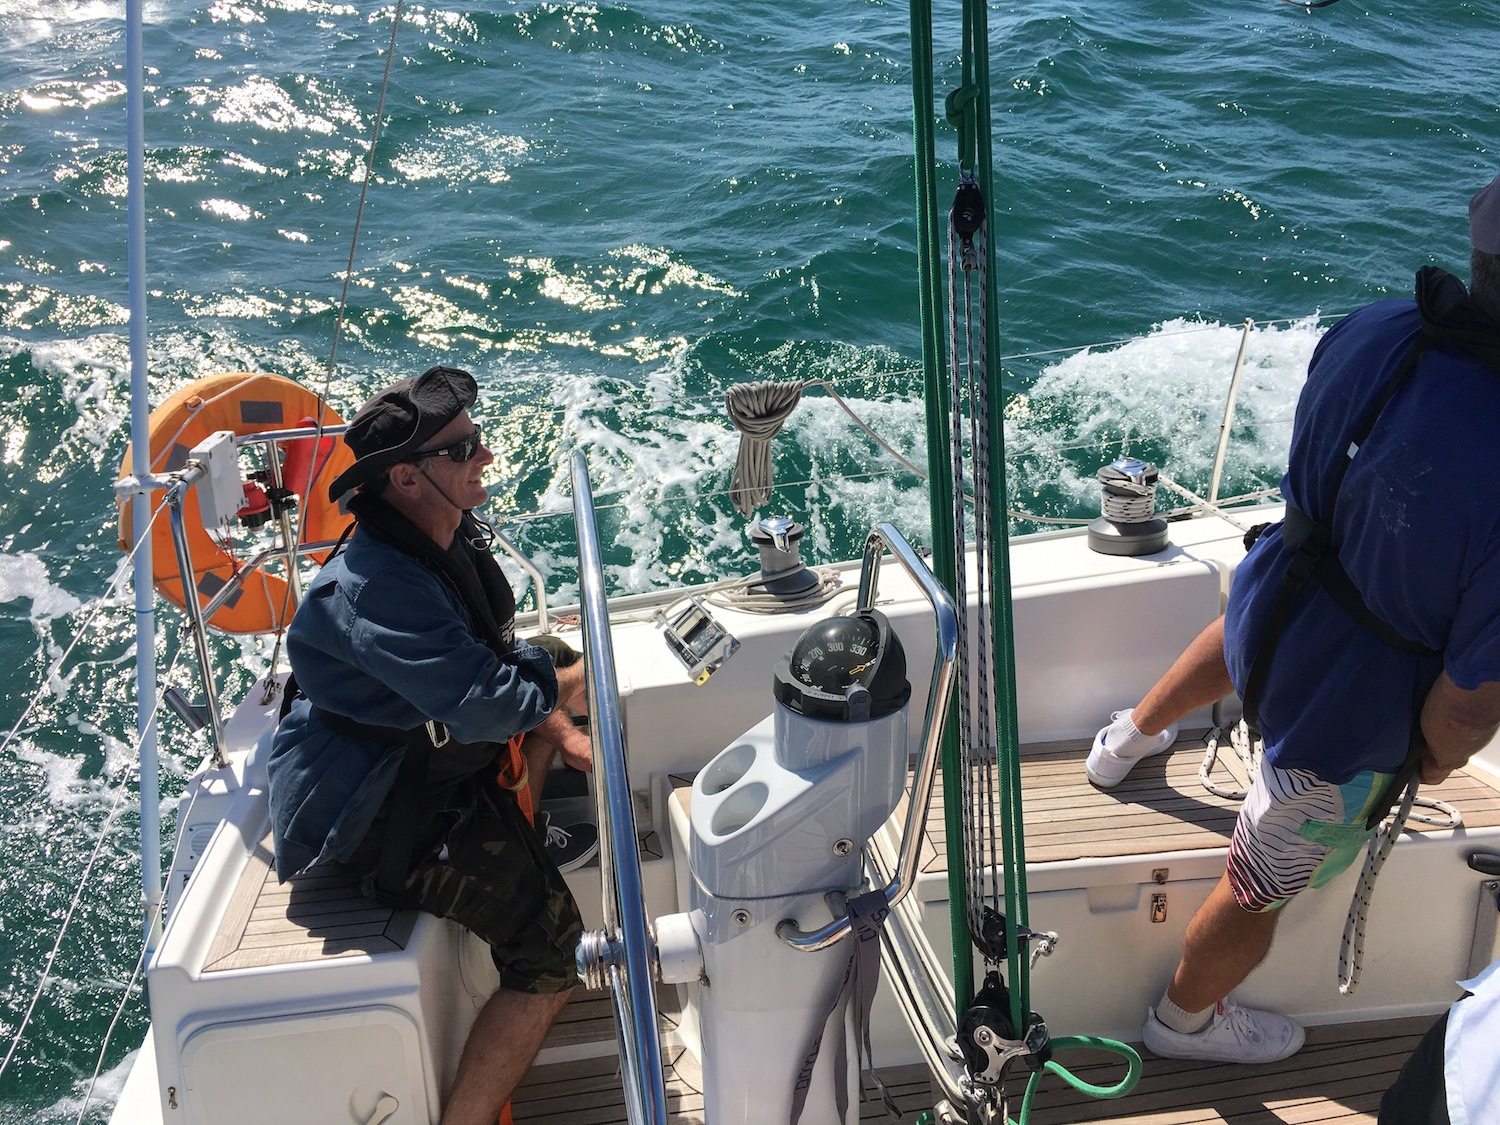 RYA Competent Crew Sailing Course in Mooloolaba and Whitsundays